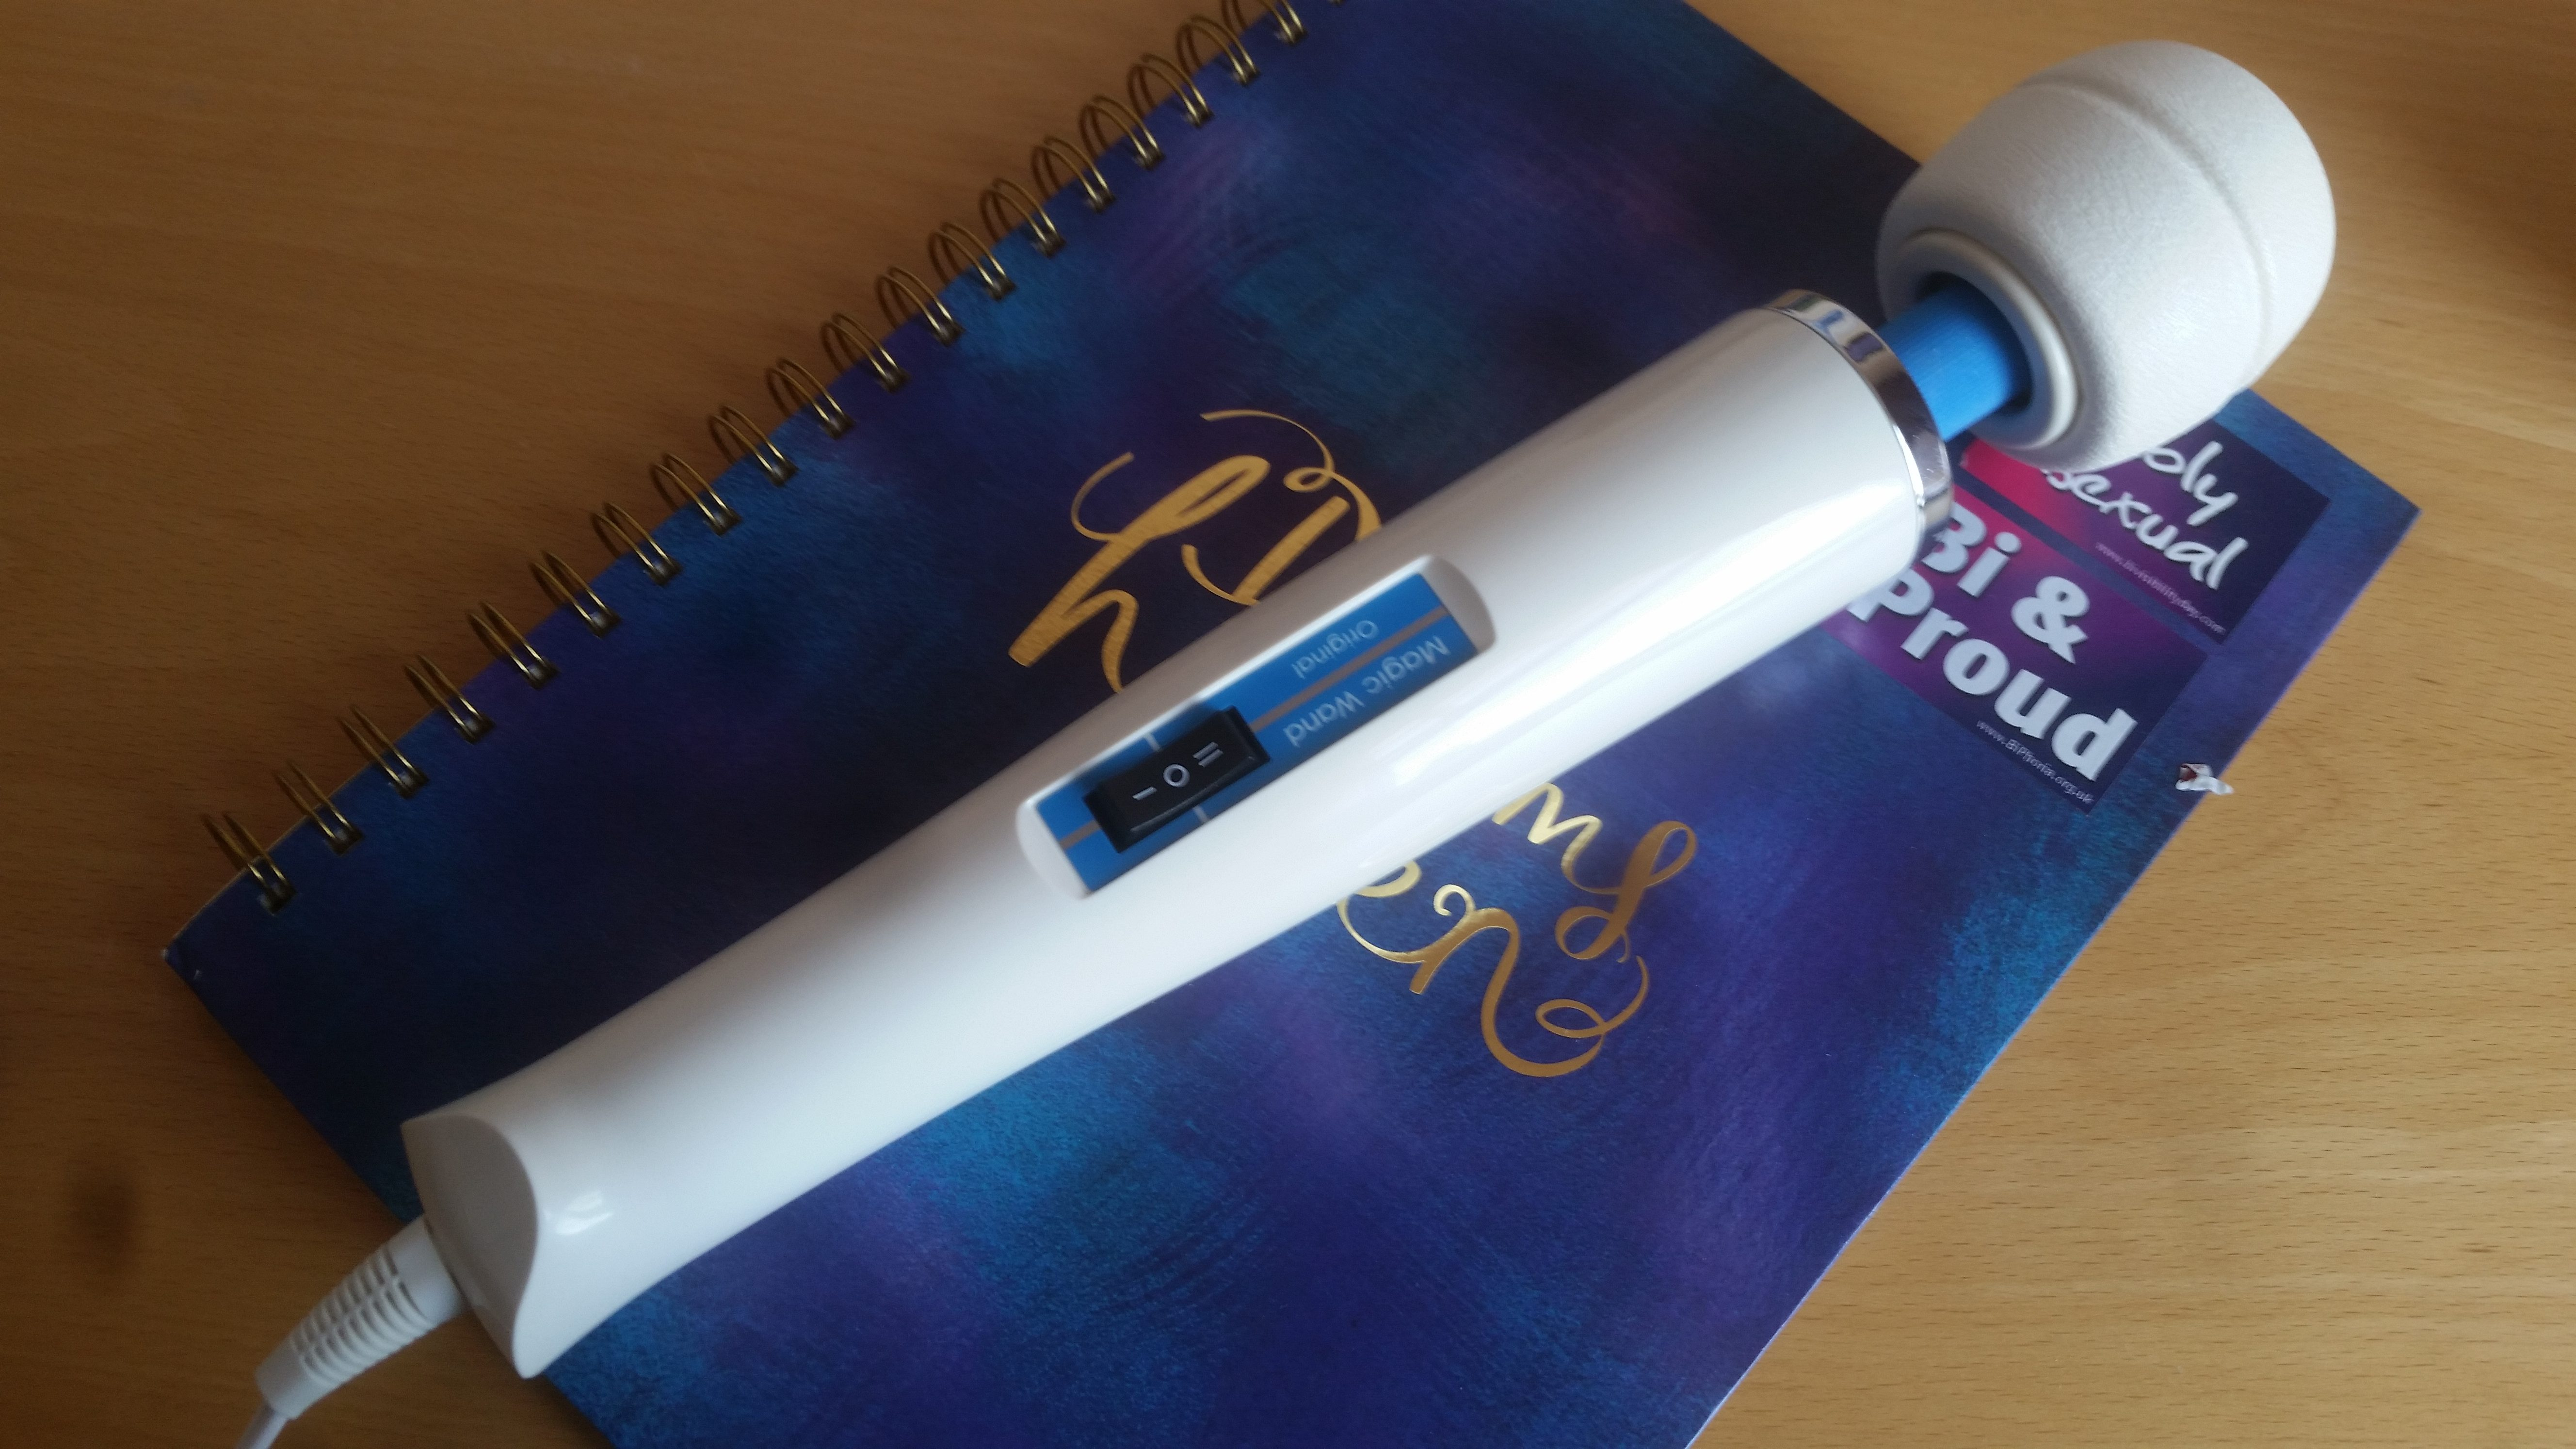 The Hitachi Magic Wand Original, lying on a blue notebook covered in bi pride stickers.